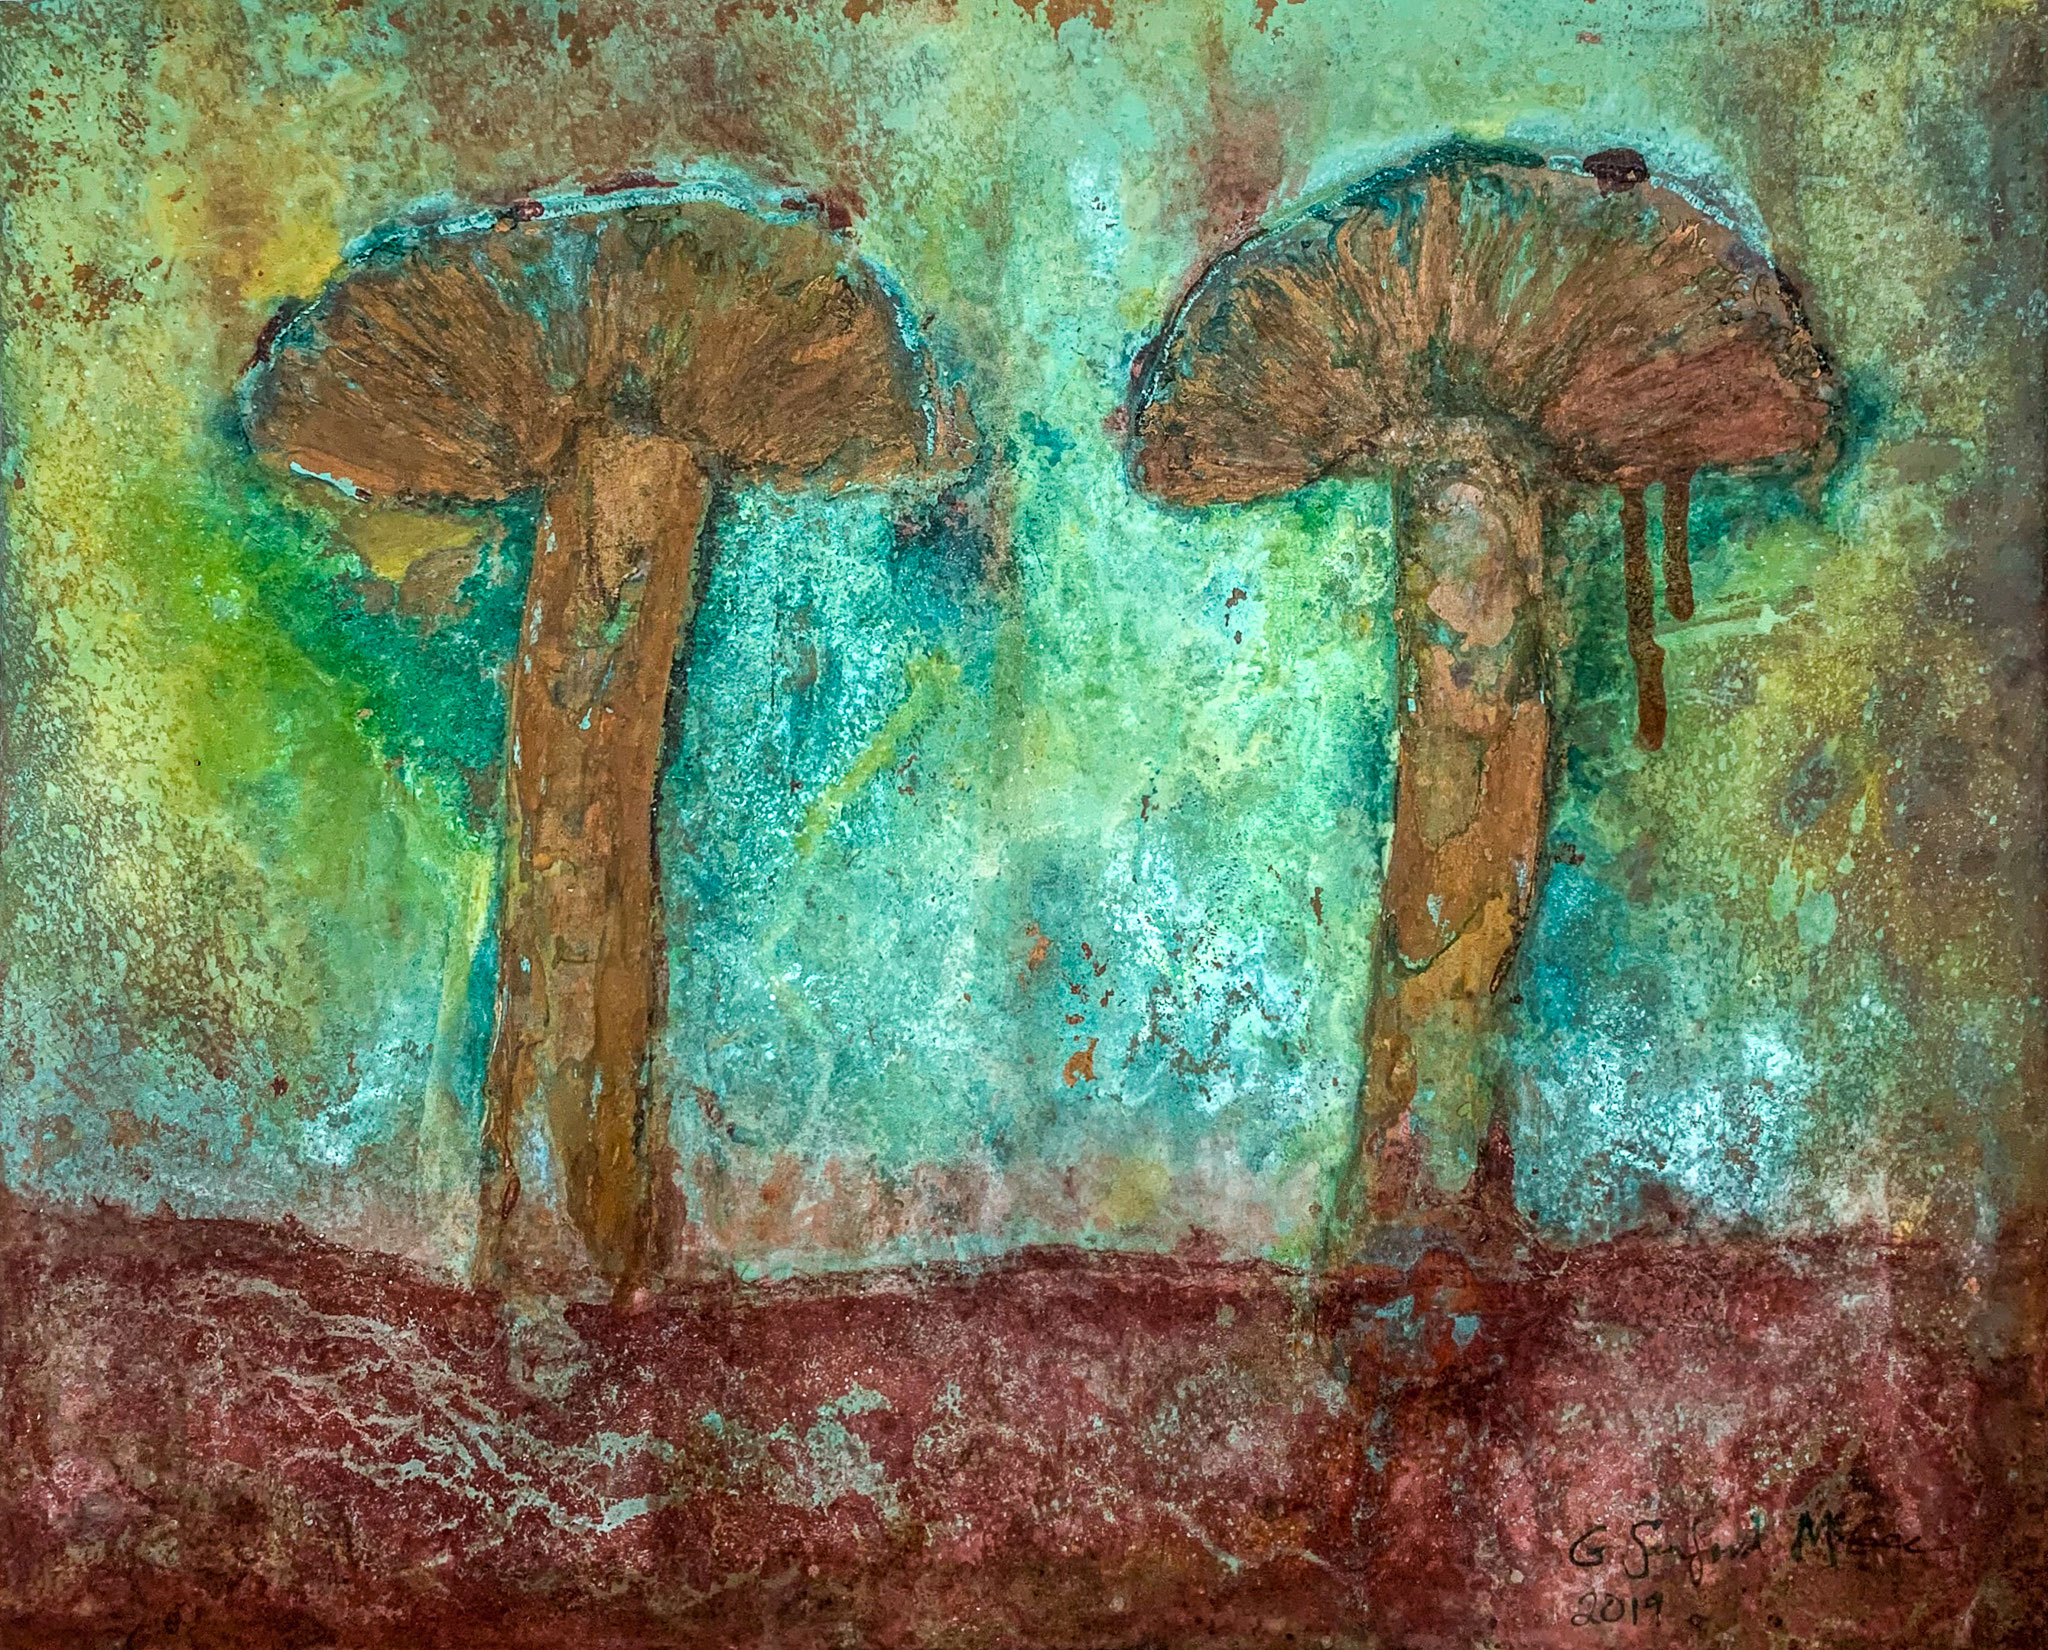 sanford-mcgee-copper-art-tennessee-two-mushrooms.jpg